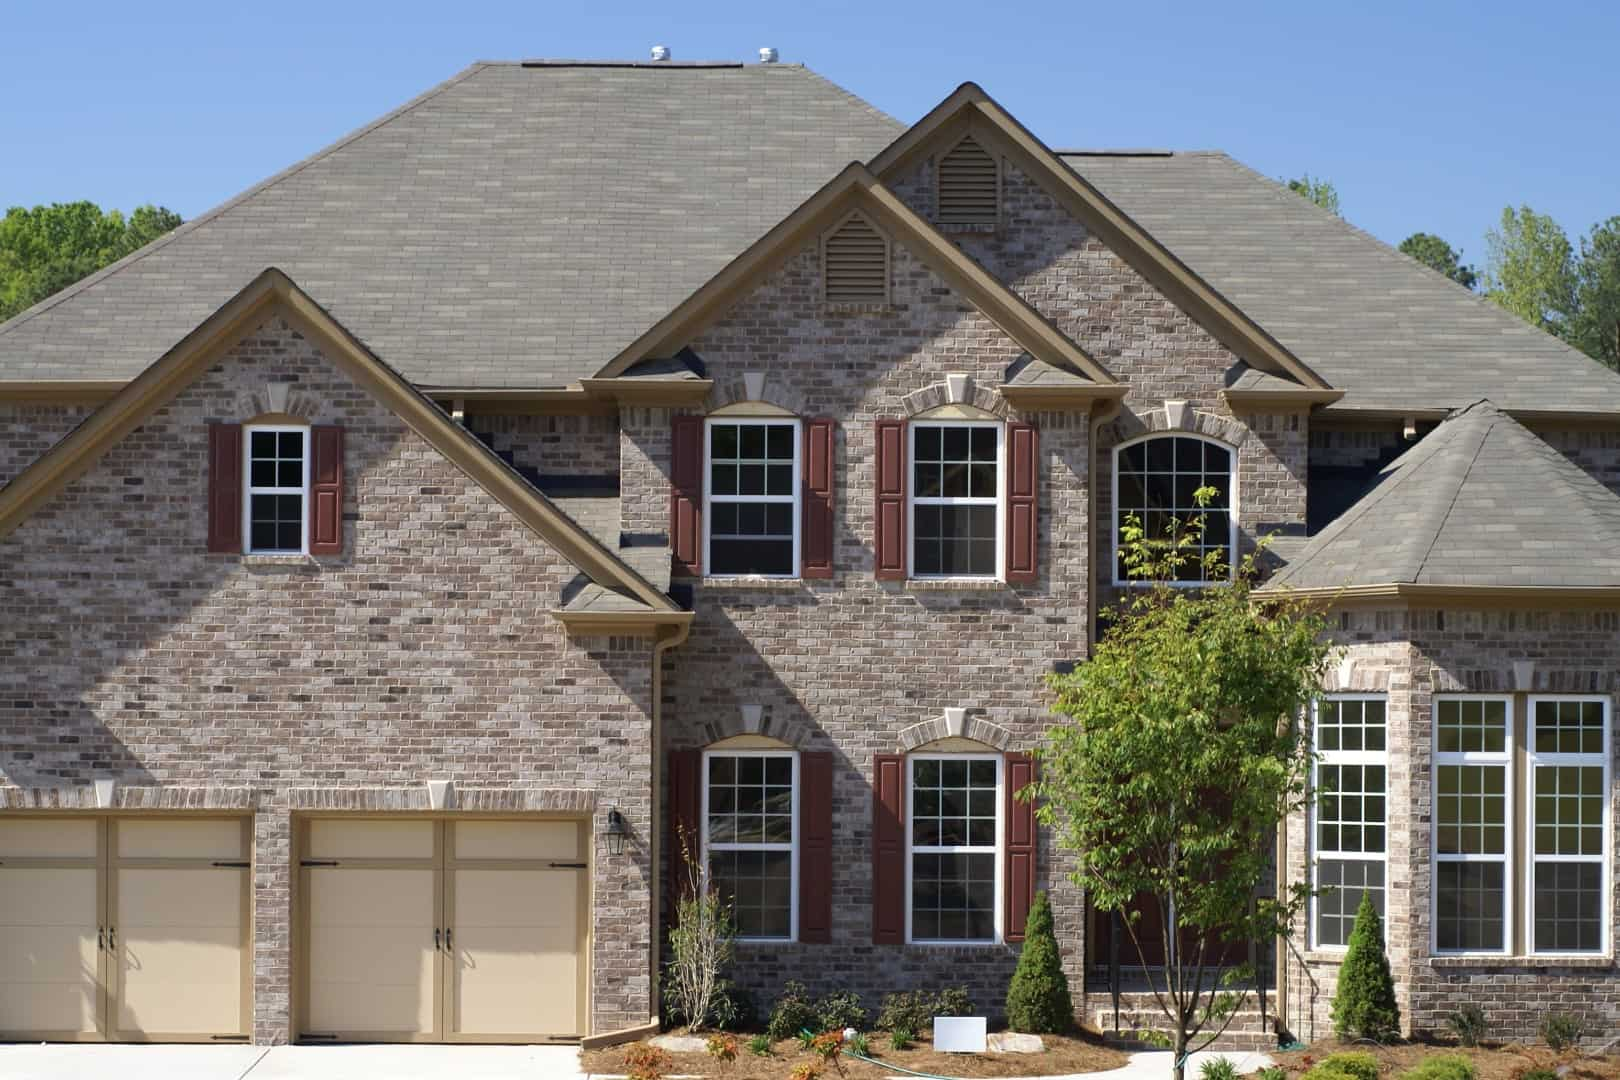 Classic Style. Meets Affordability. GlassMaster® 3-tab shingles bring proven performance and appealing classic looks.